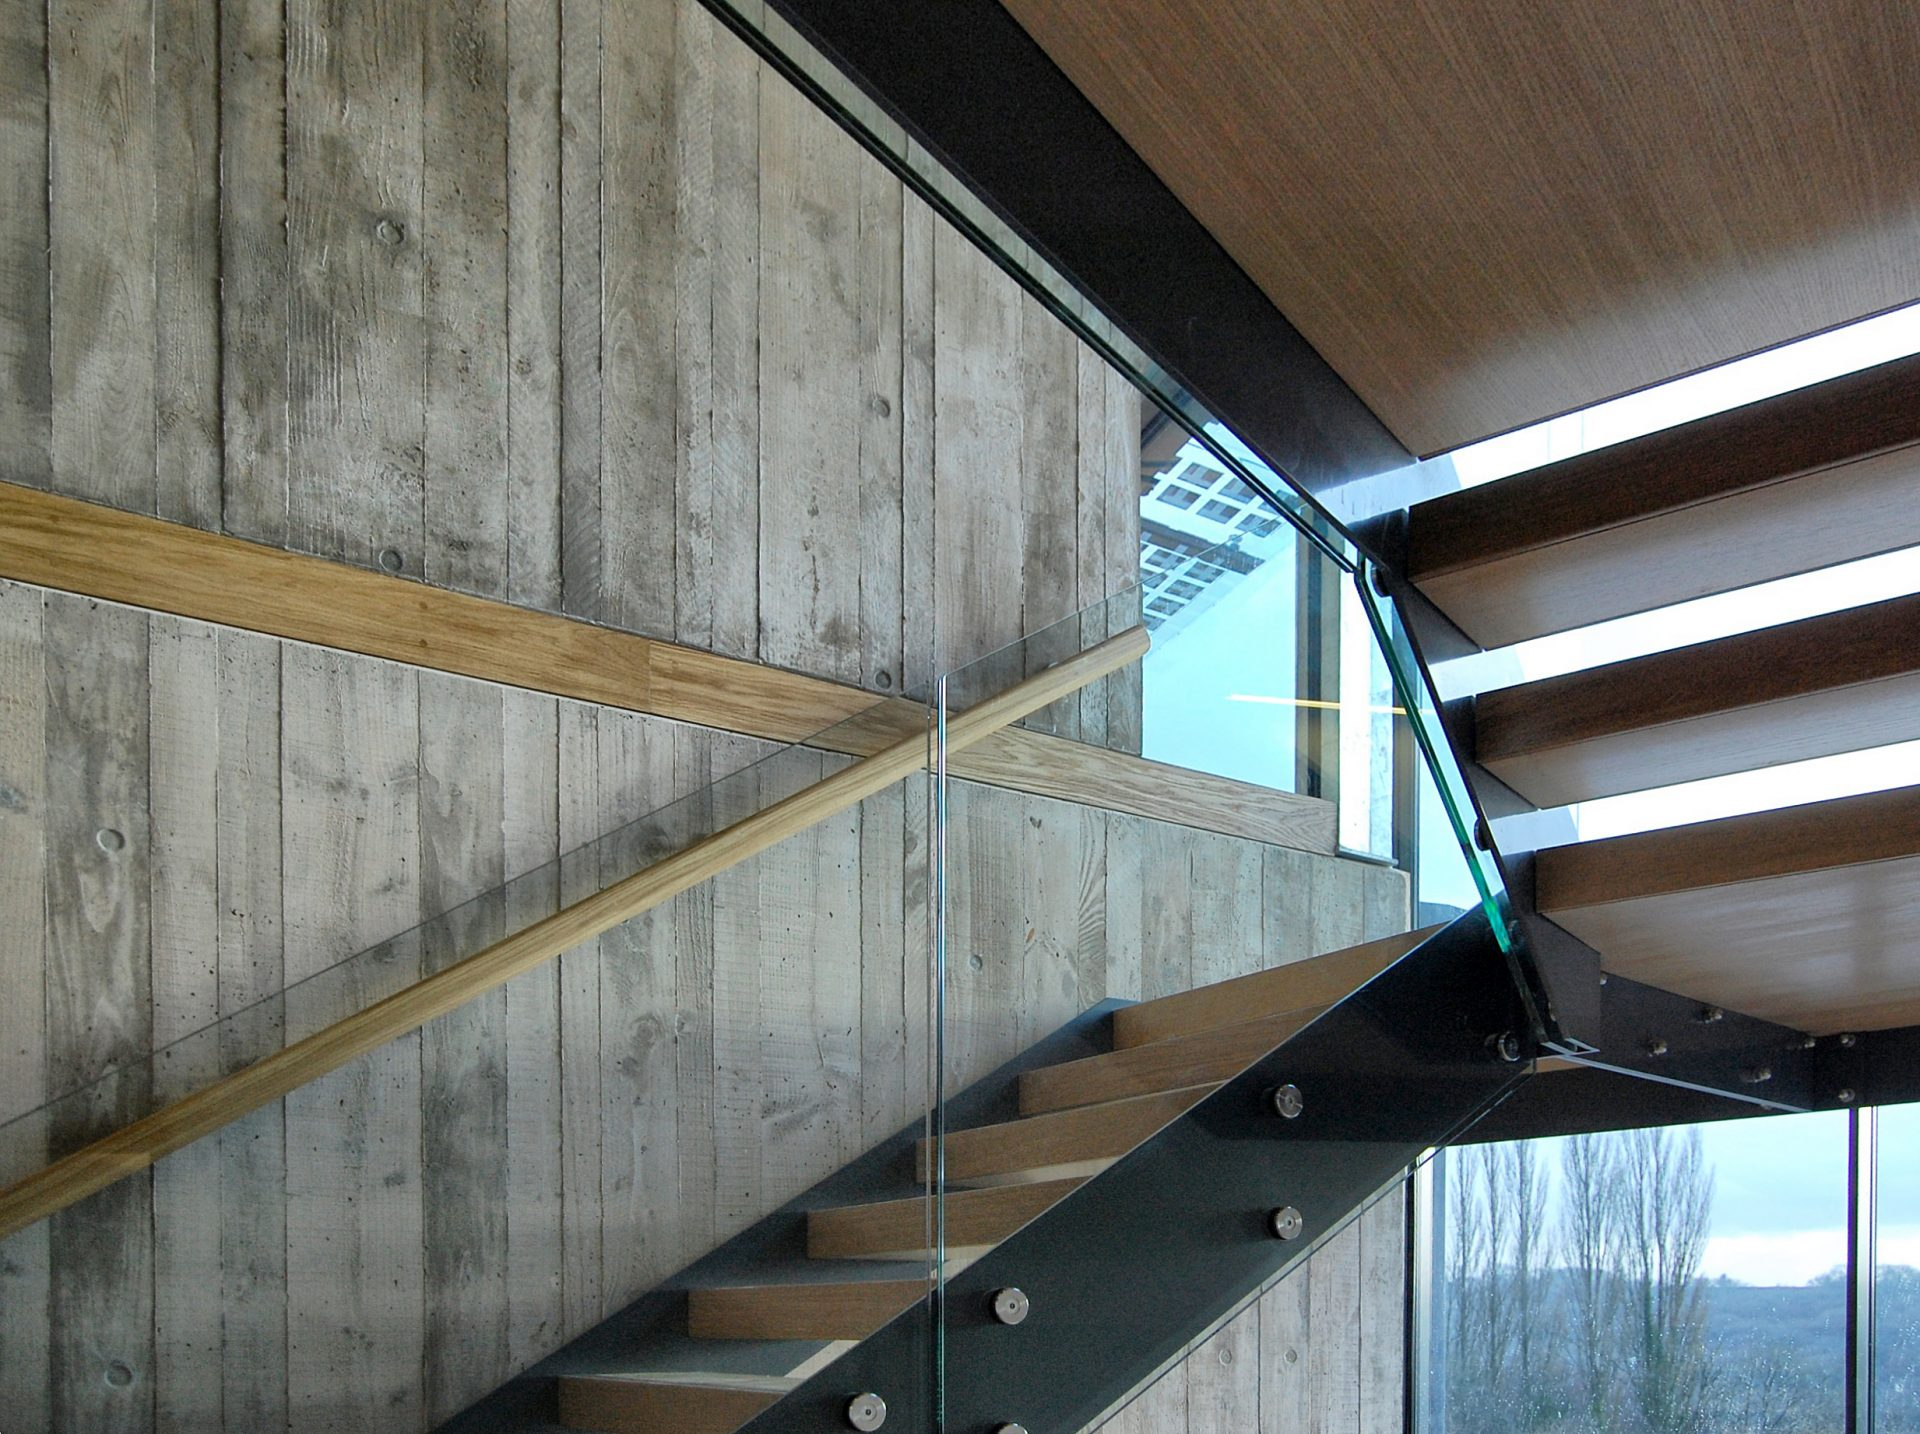 Limpley Stoke Eco-House Staircase In-situ Concrete Oak Steel Glass